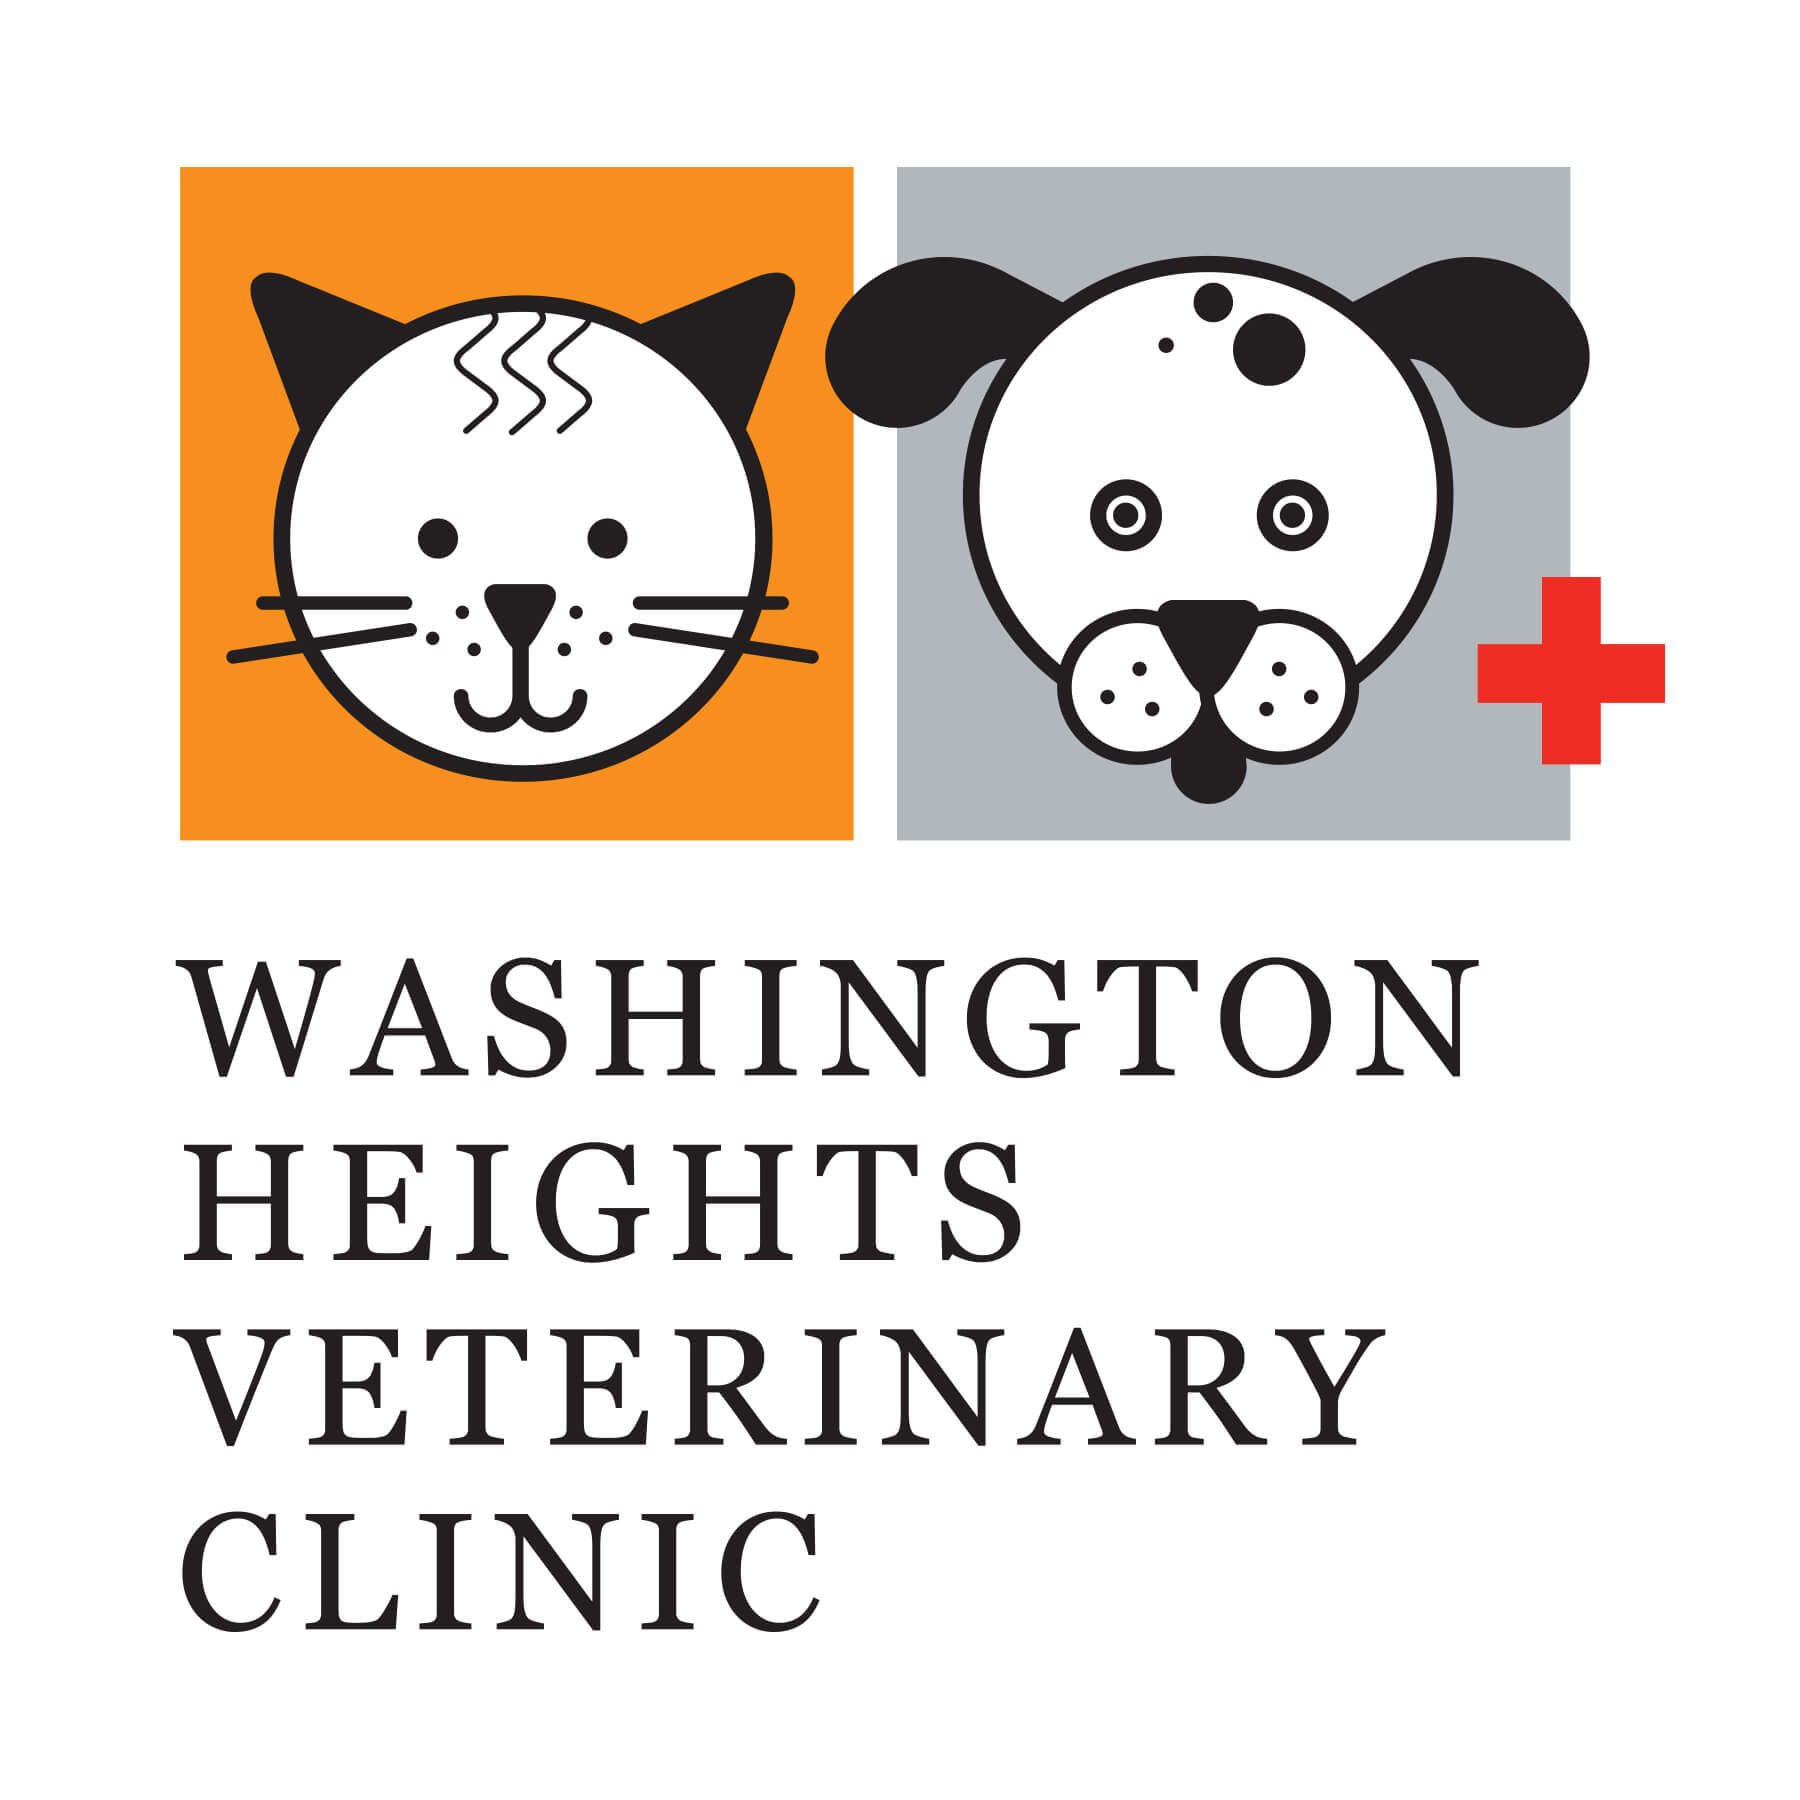 Washington Heights Veterinary Clinic